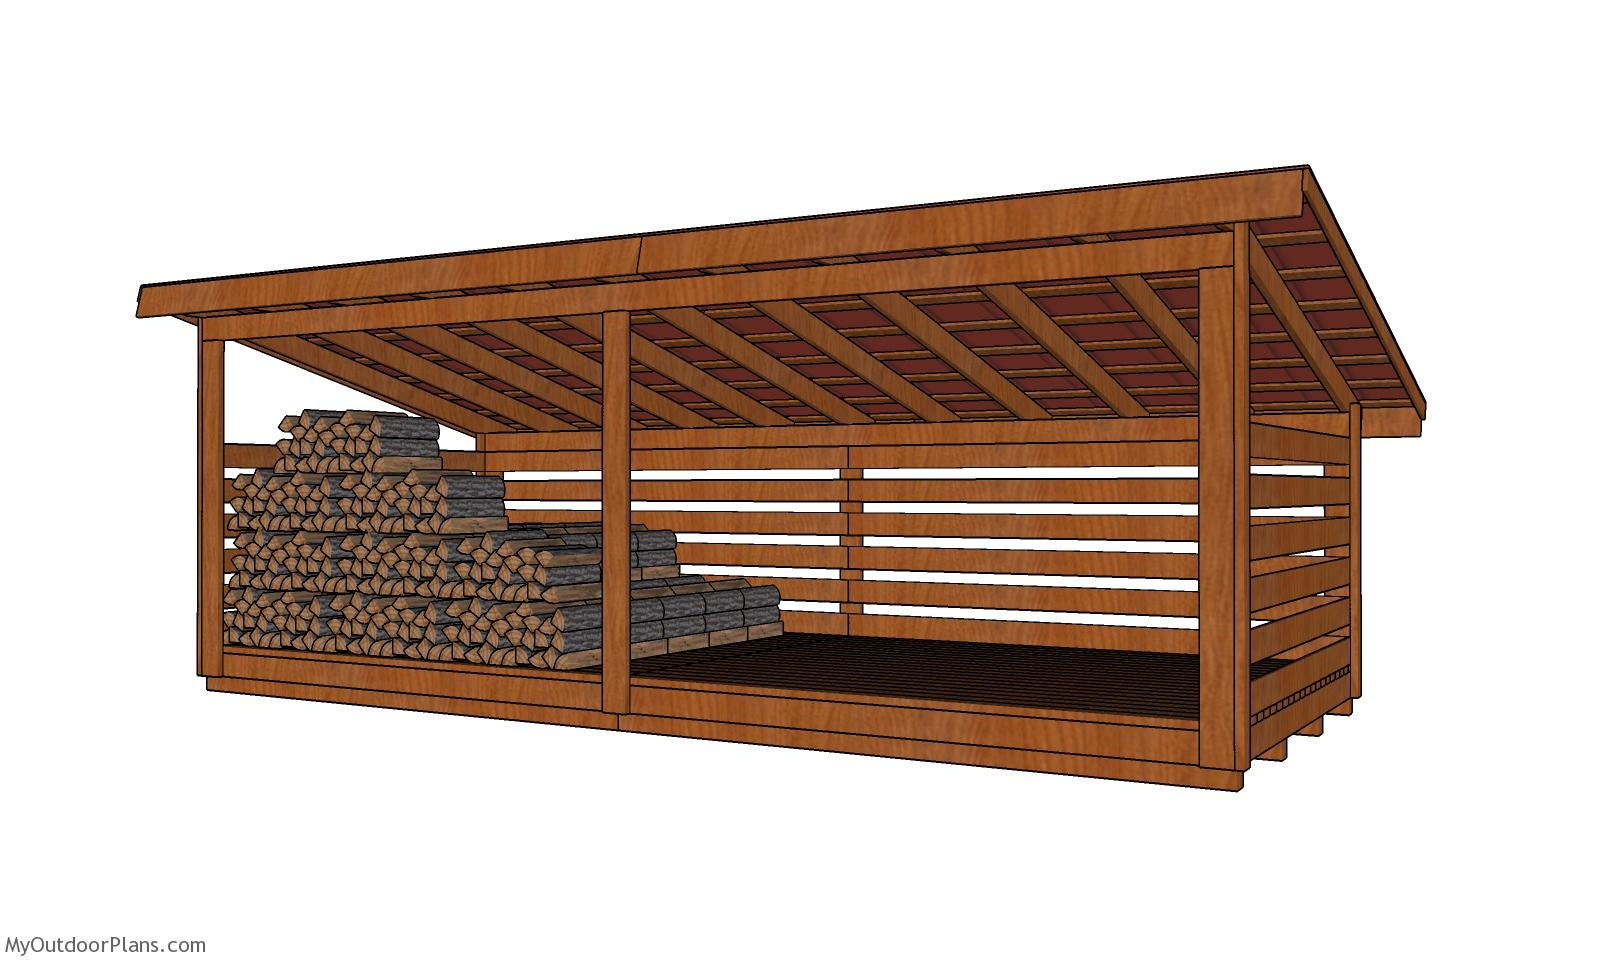 8x20 6 Cord Wood Storage Shed Plans